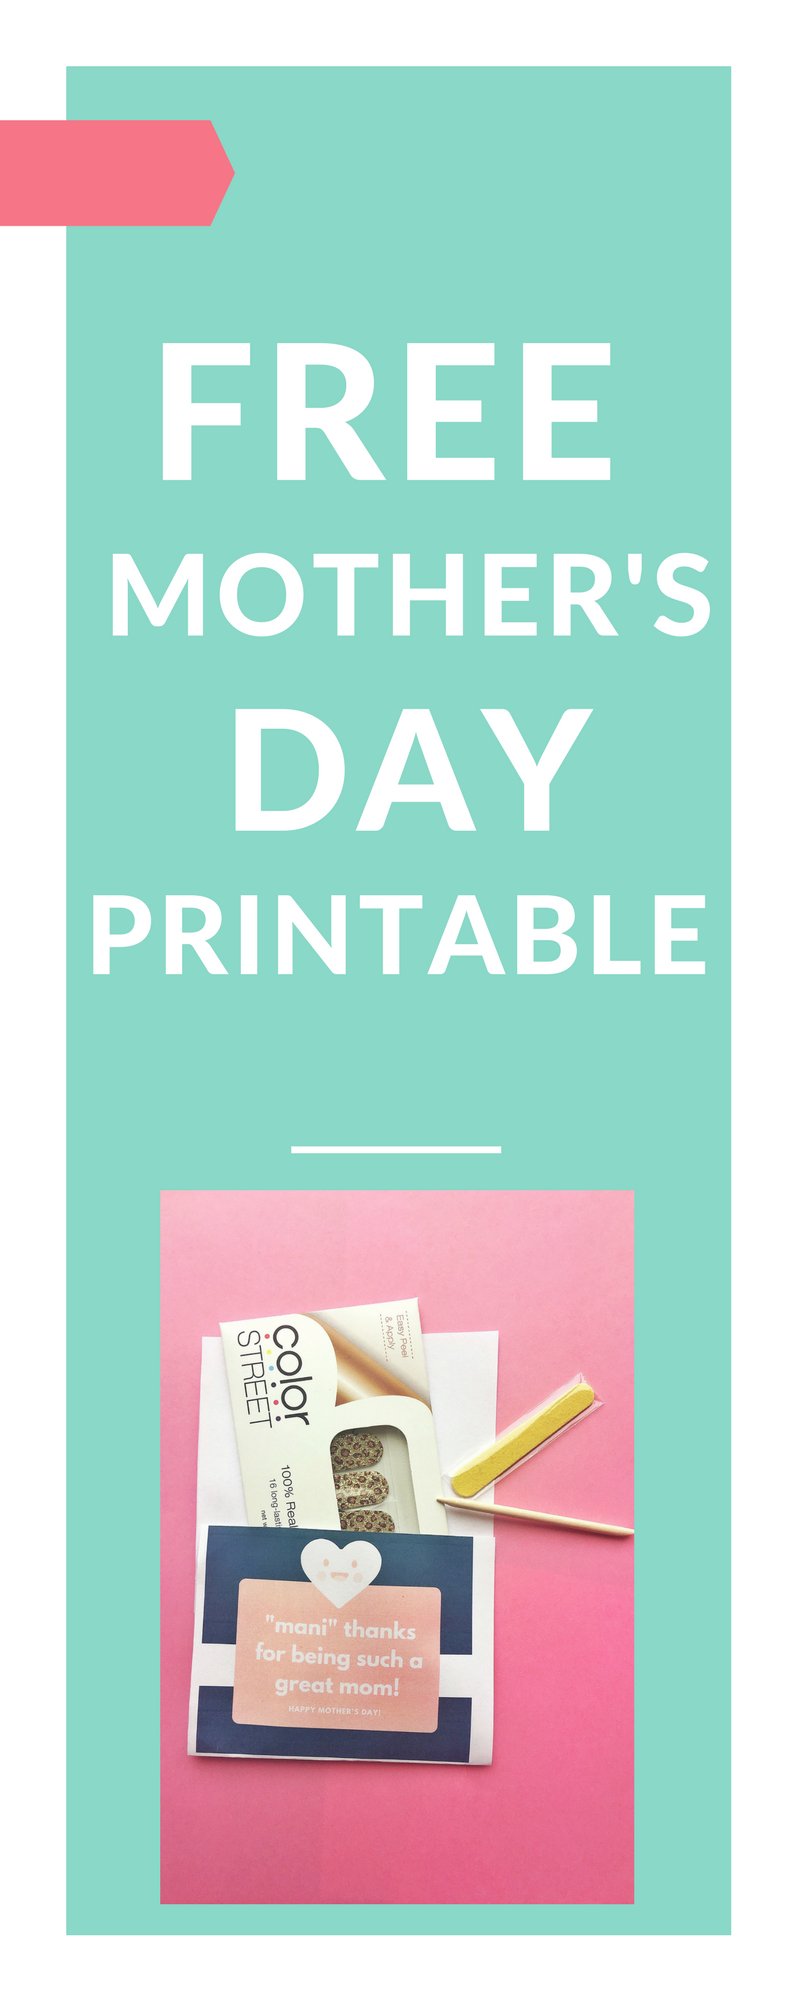 Free Mother's Day Gift Printable